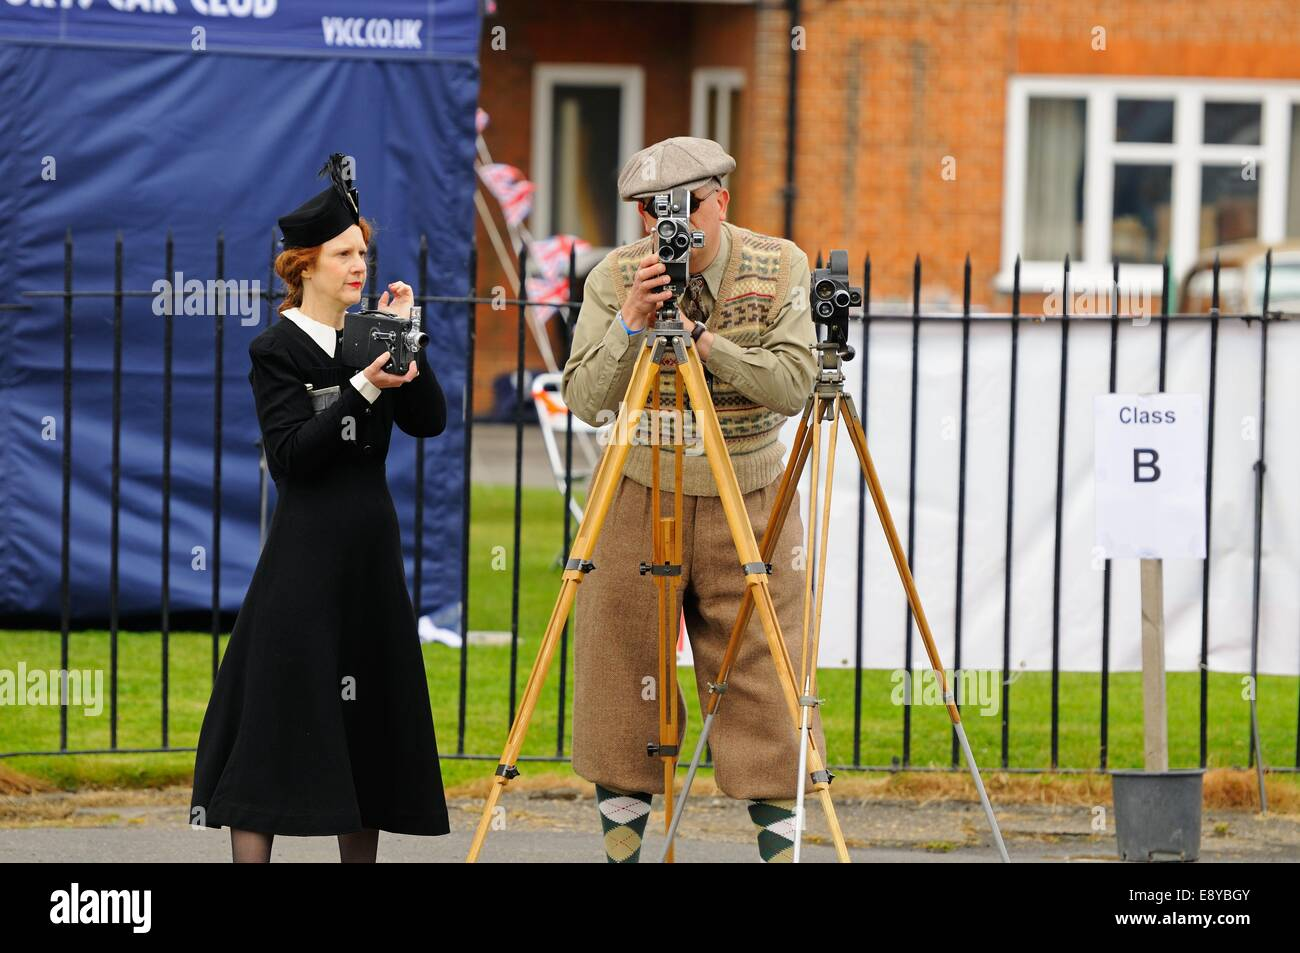 A man and wife couple in Twenties period clothing operating and loading period film cameras at an event at Brooklands - Stock Image